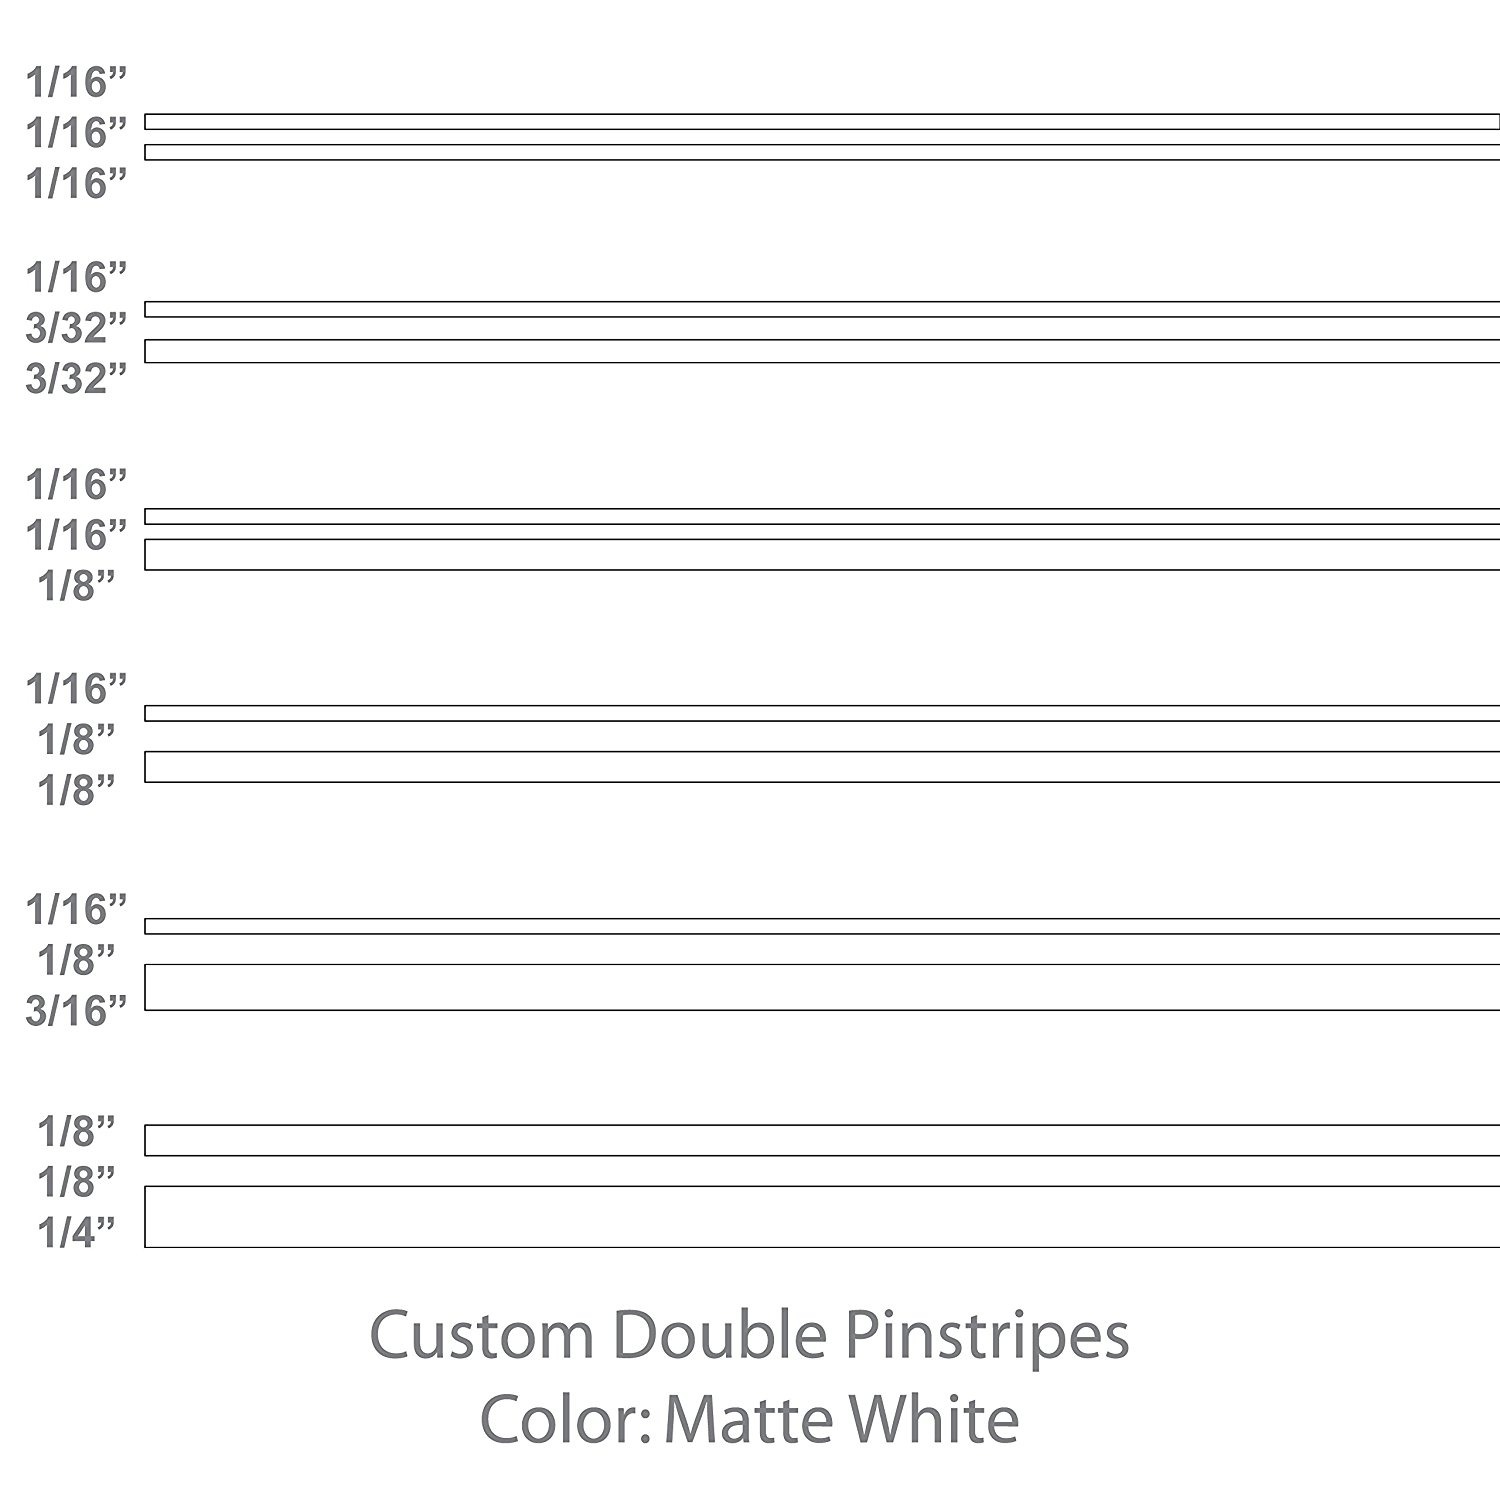 "Double Pinstripes (Matte White) 1/8"" 1/16"" 3/16"" 3/32"" 5/8"" 1/4"" 1/2"" 3/4"" inch widths / auto car truck pinstriping vinyl tape decal / by 1060 Graphics. (1/16"" - 1/16"" - 1/8"" (12' ft. length))"